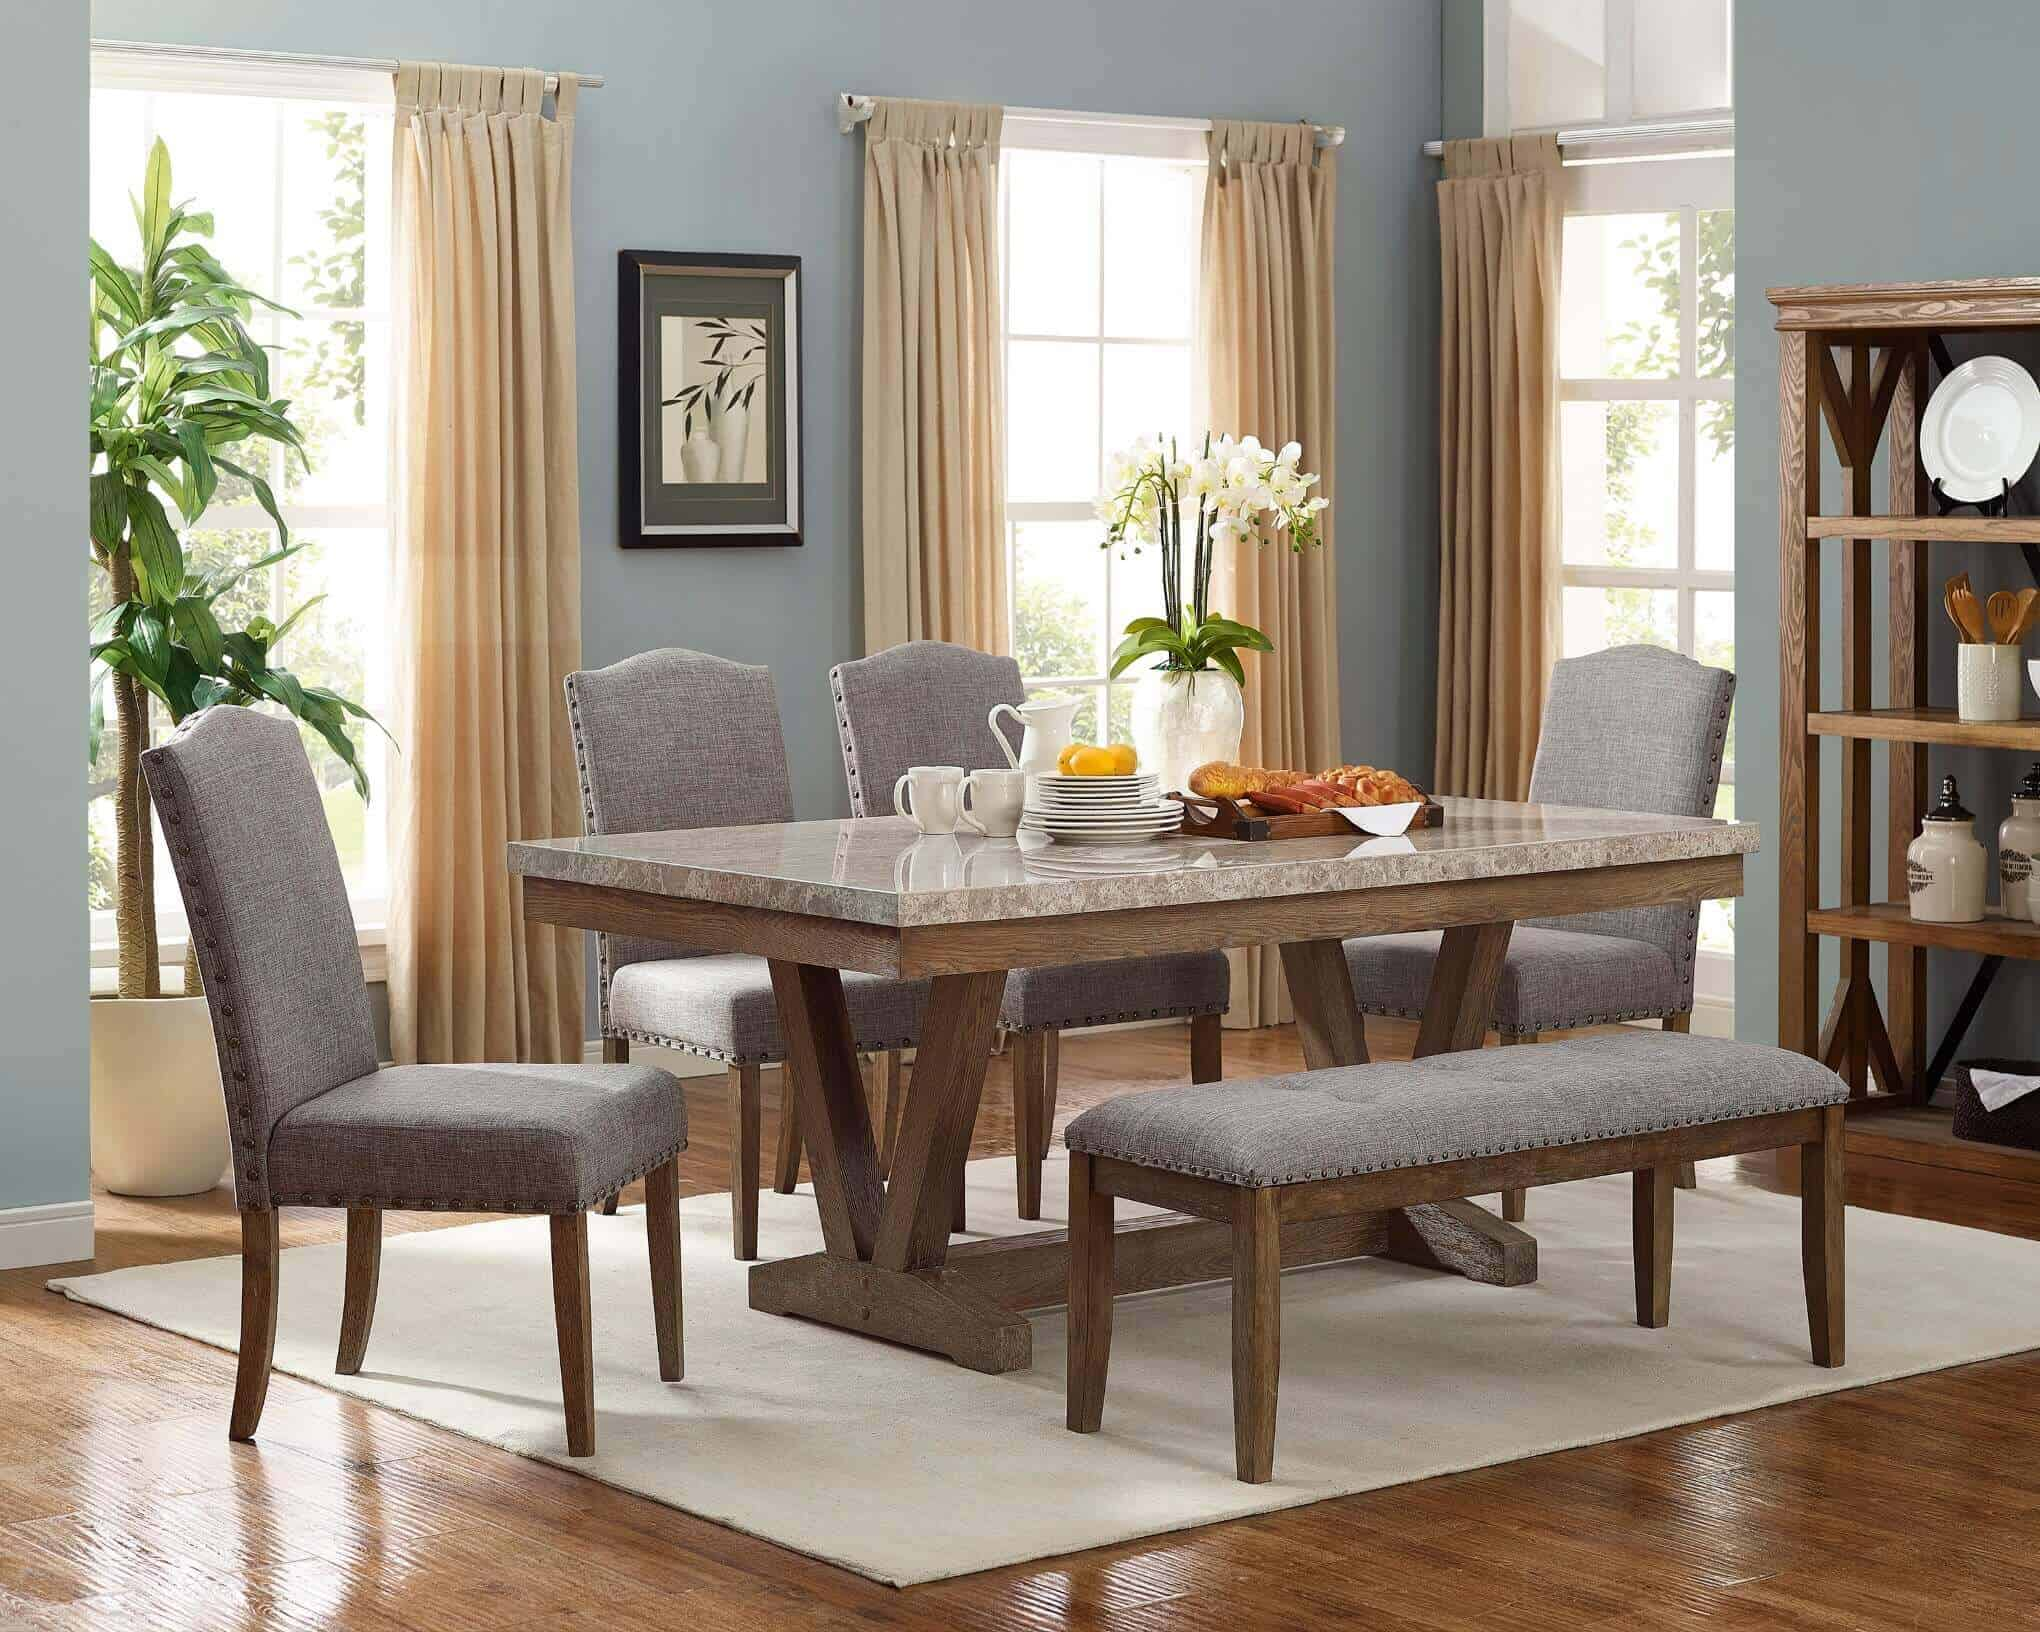 Dining Room Trends 2021 Top 10 Awesome Ideas